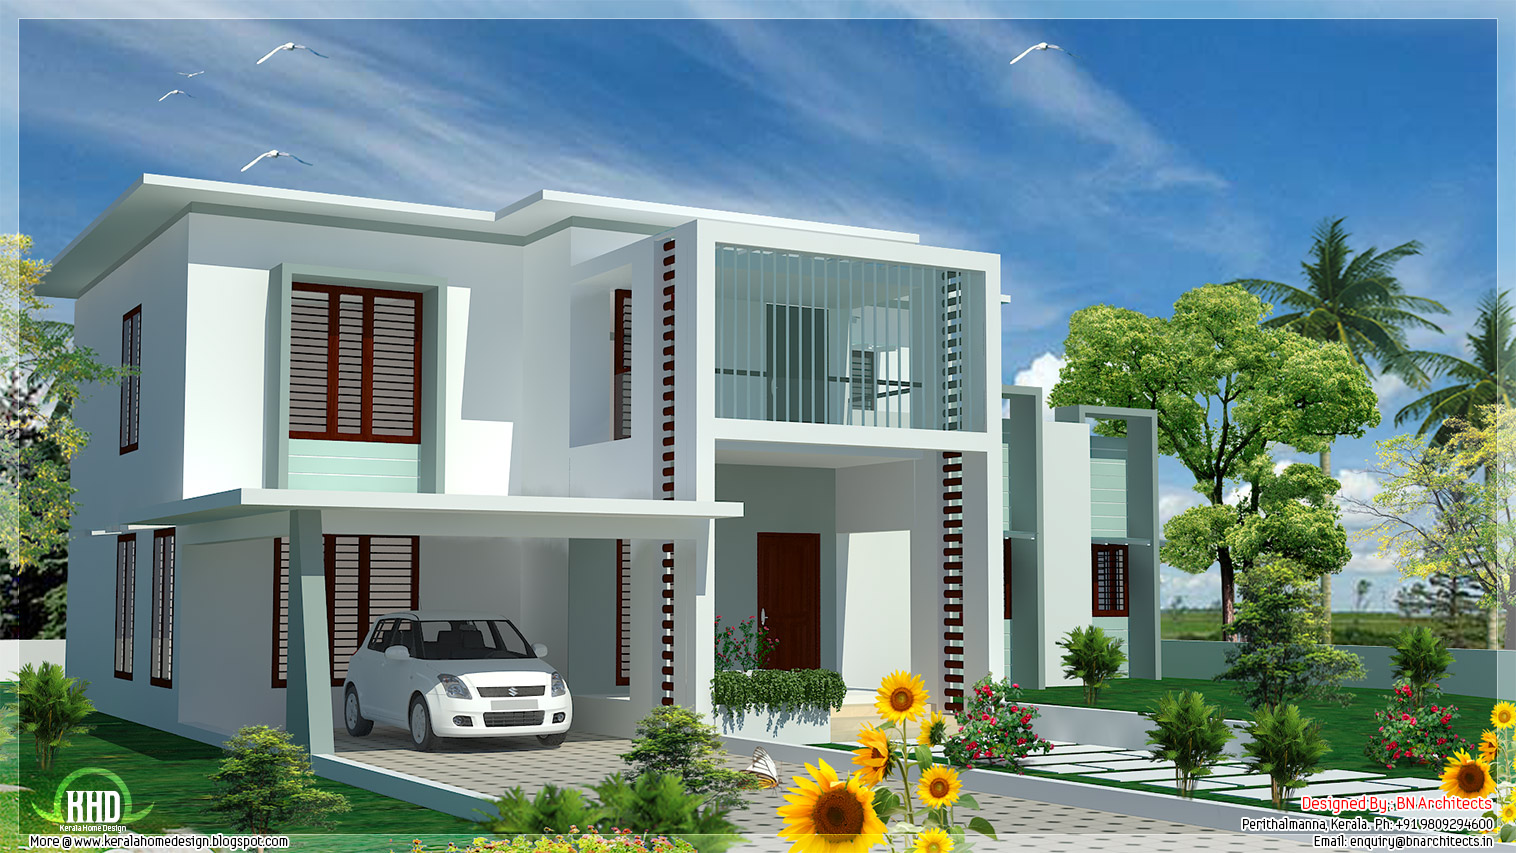 4 bedroom modern flat roof house kerala home design and 4 bedroom modern house plans